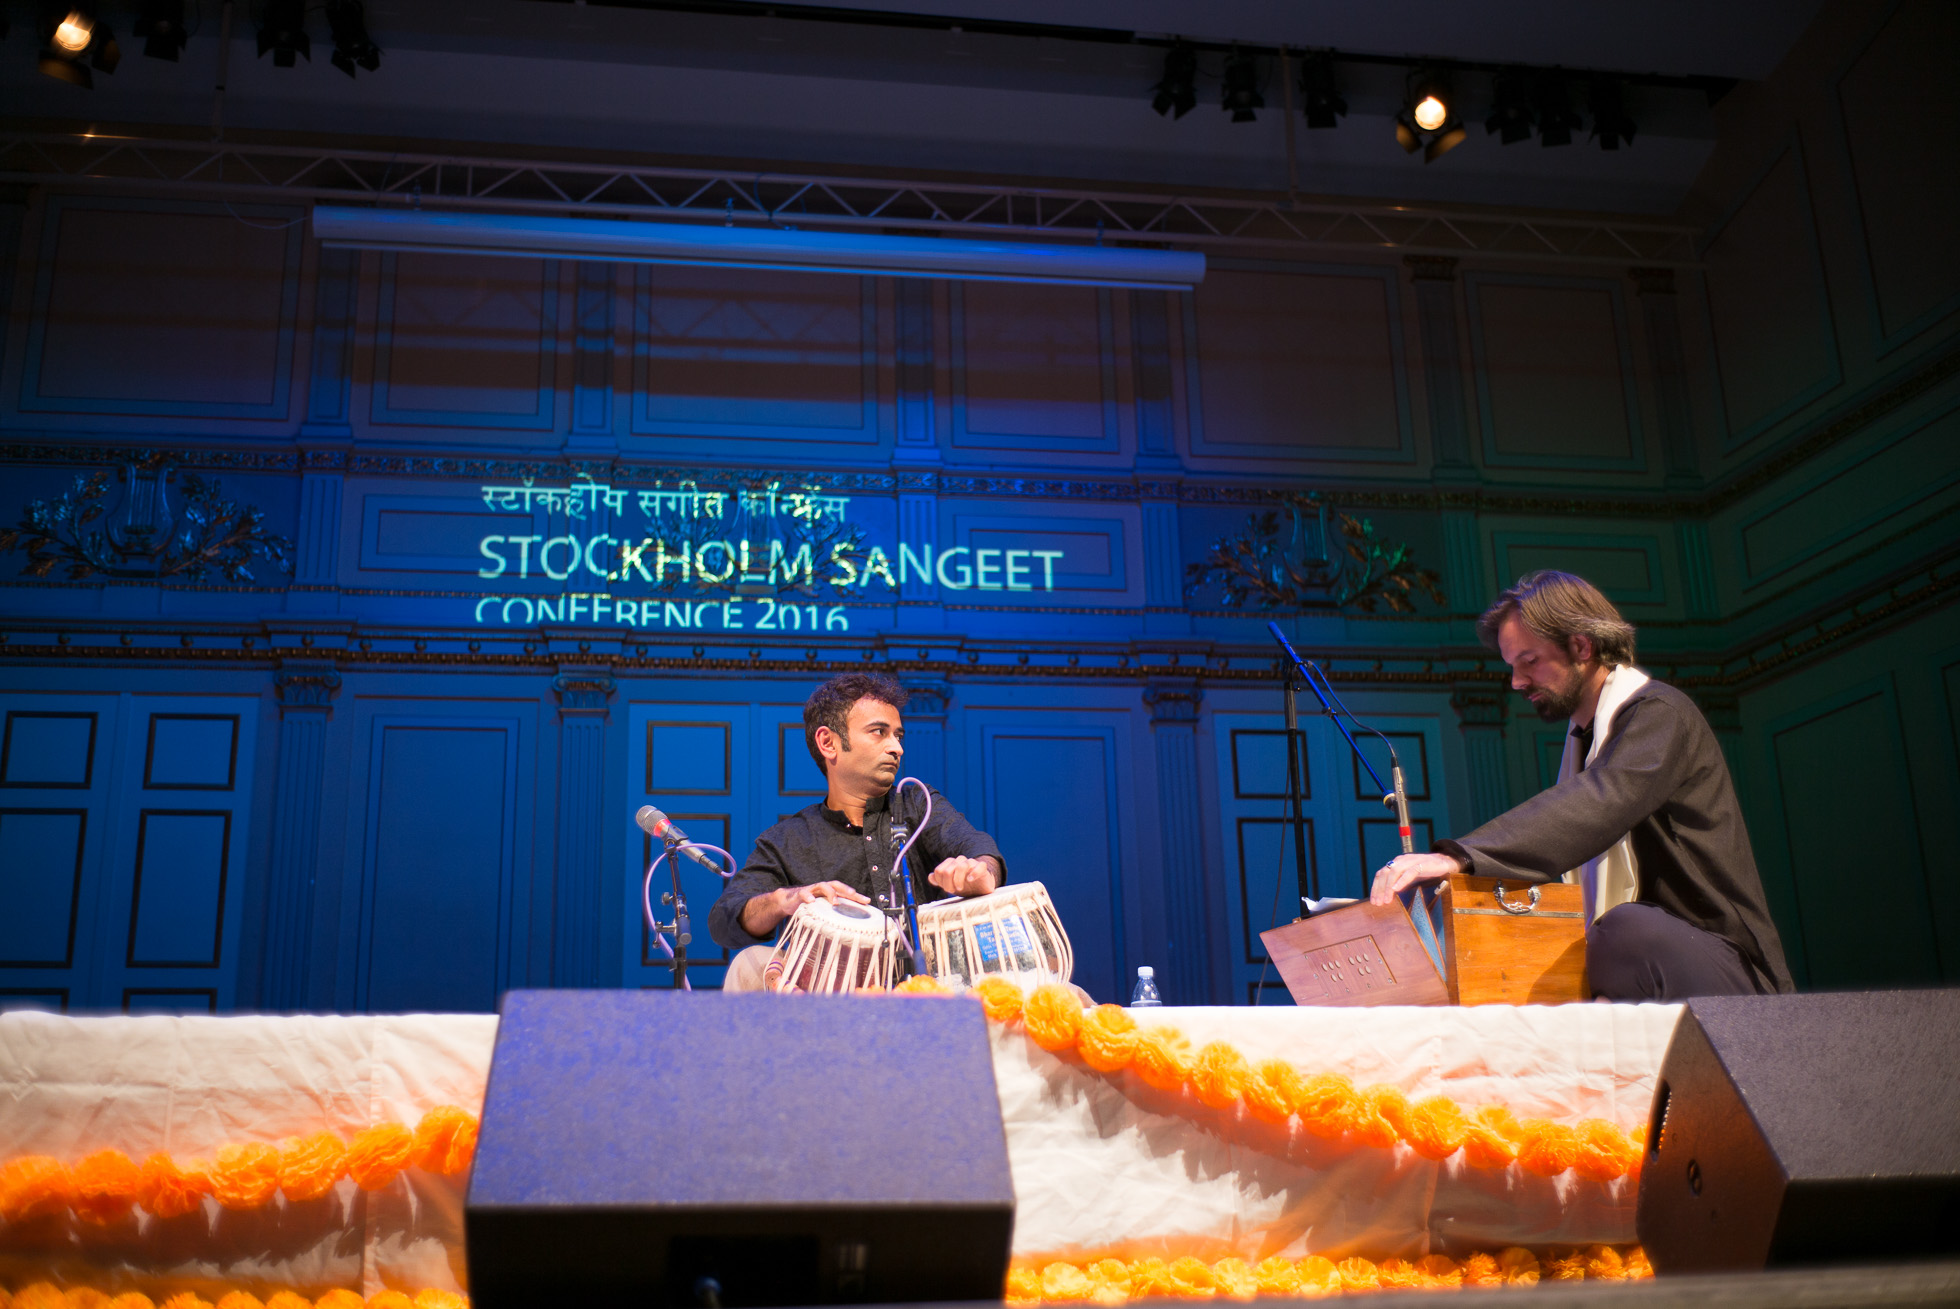 2016-10-16-stockholm-sangeet-conference-2016_2016-10-16_max-dahlstrand_0366